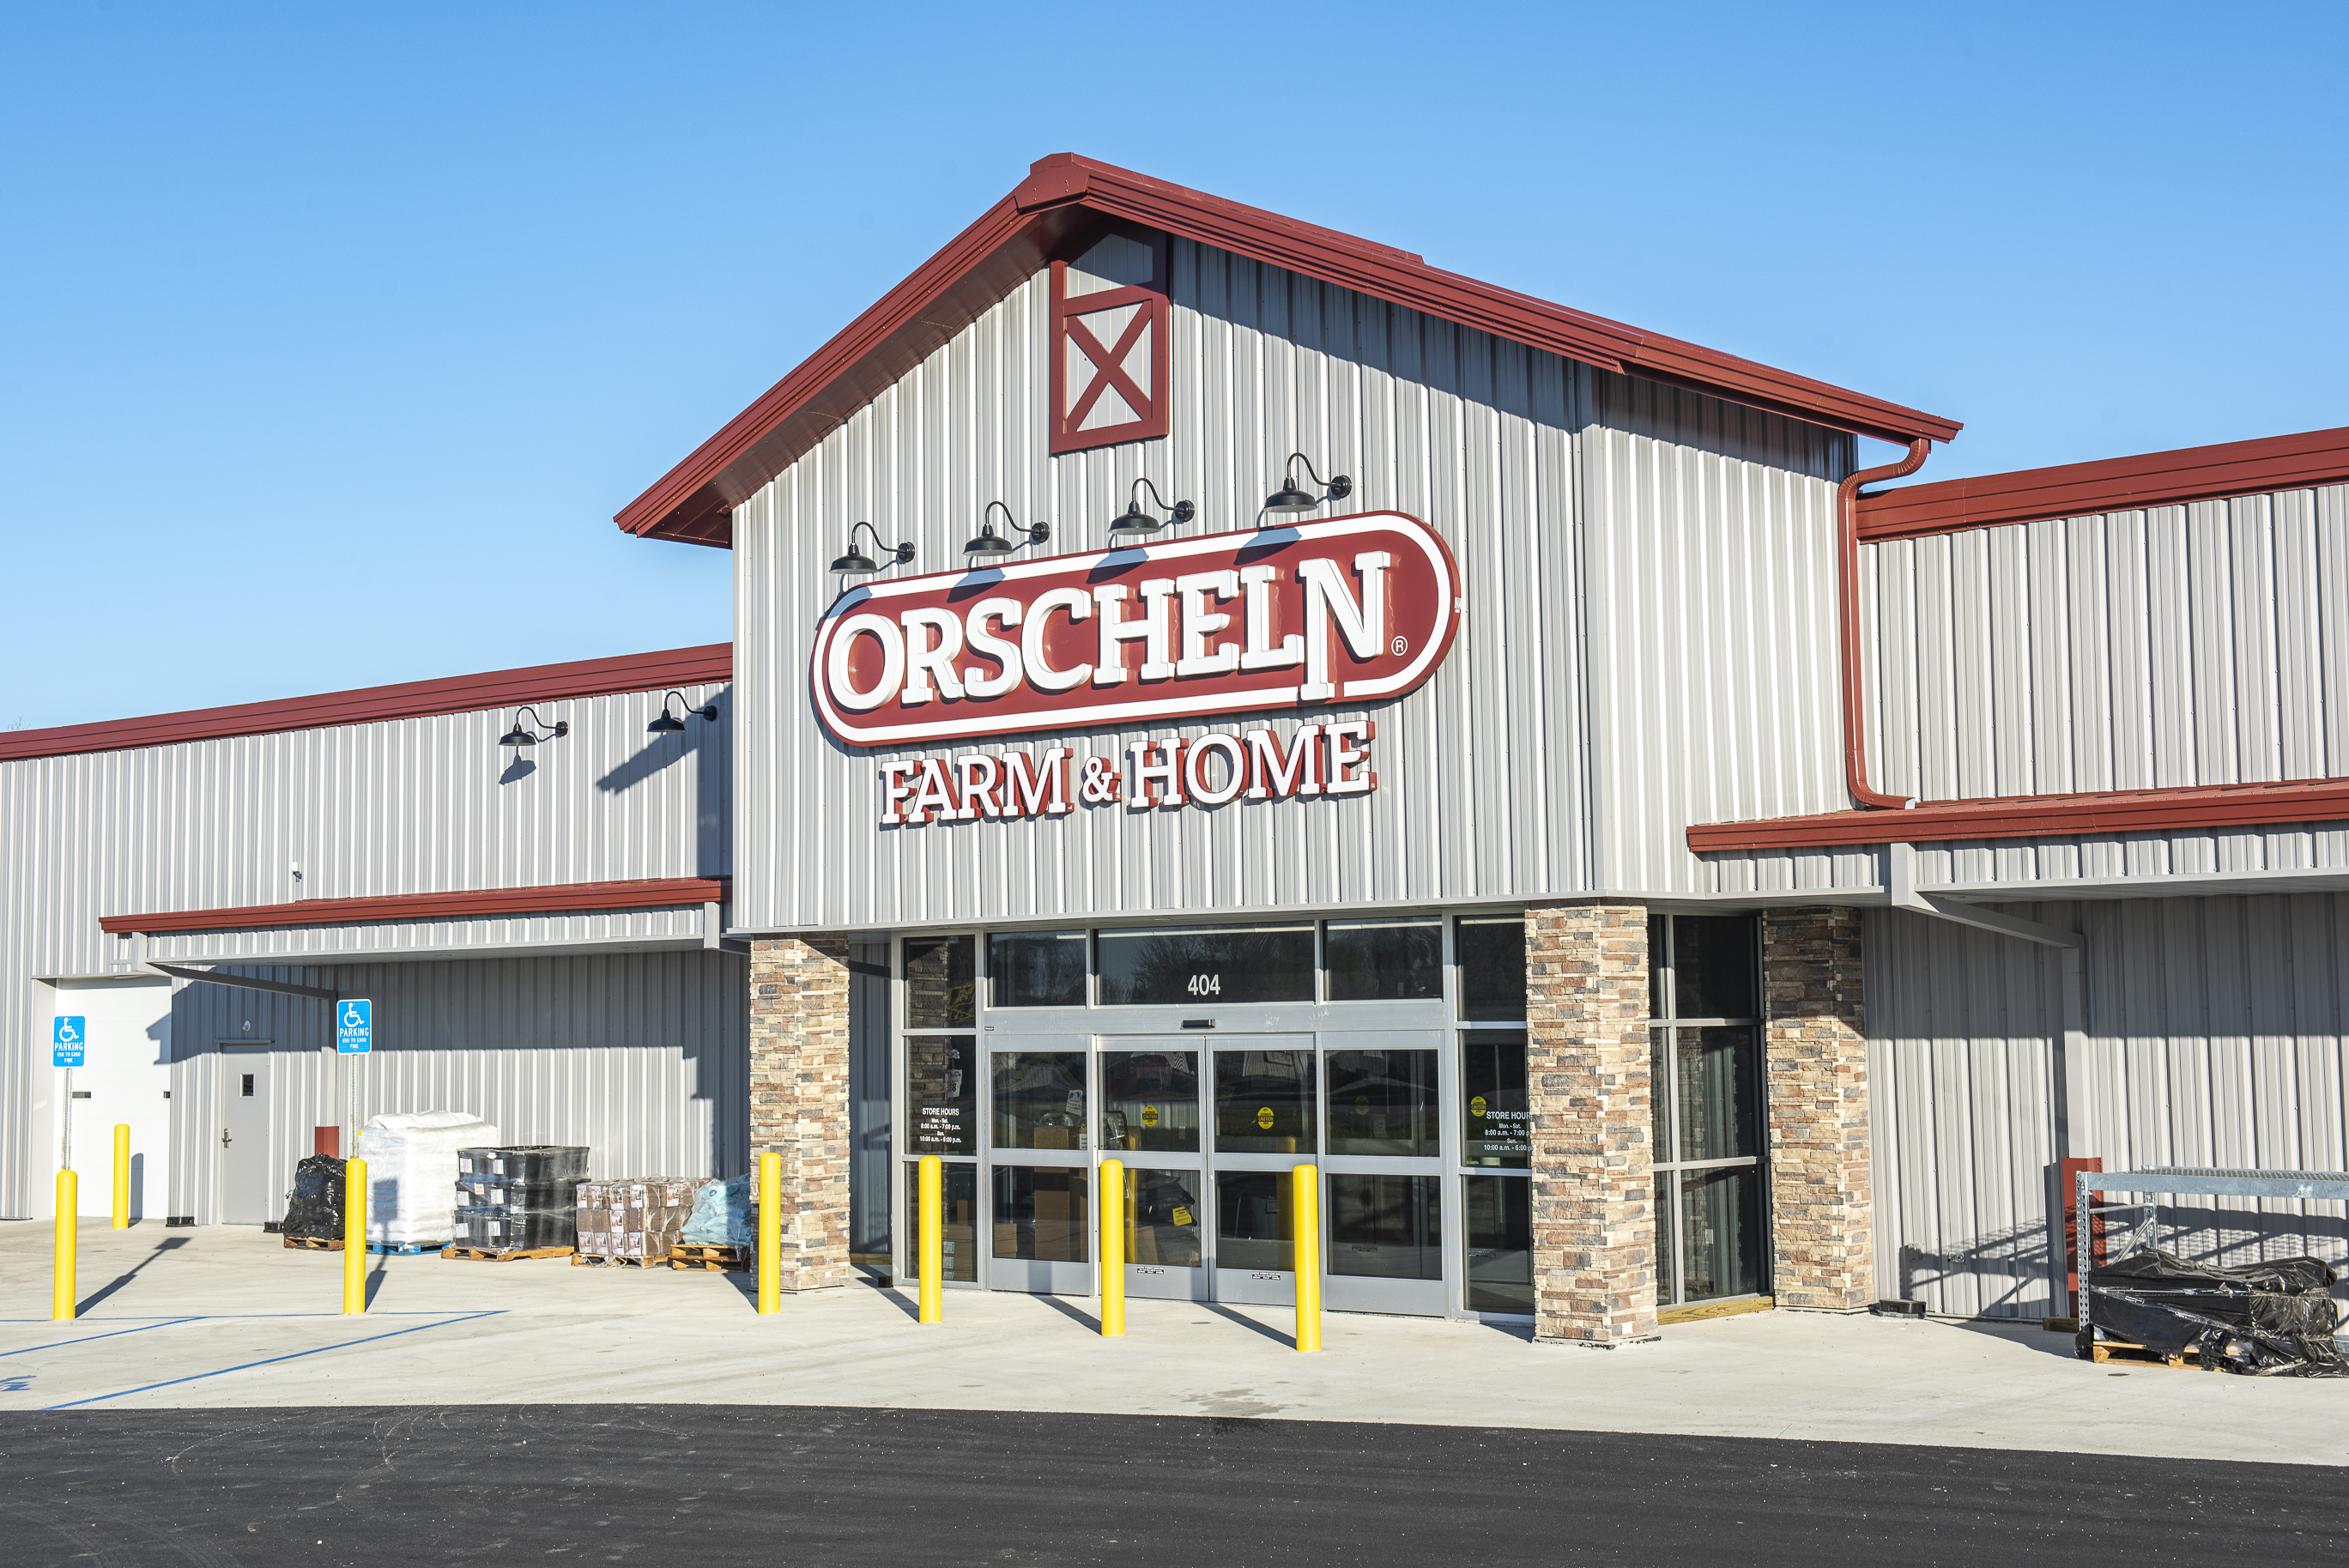 Front view of Orscheln Farm & Home Store in Salisbury, Missouri 65281